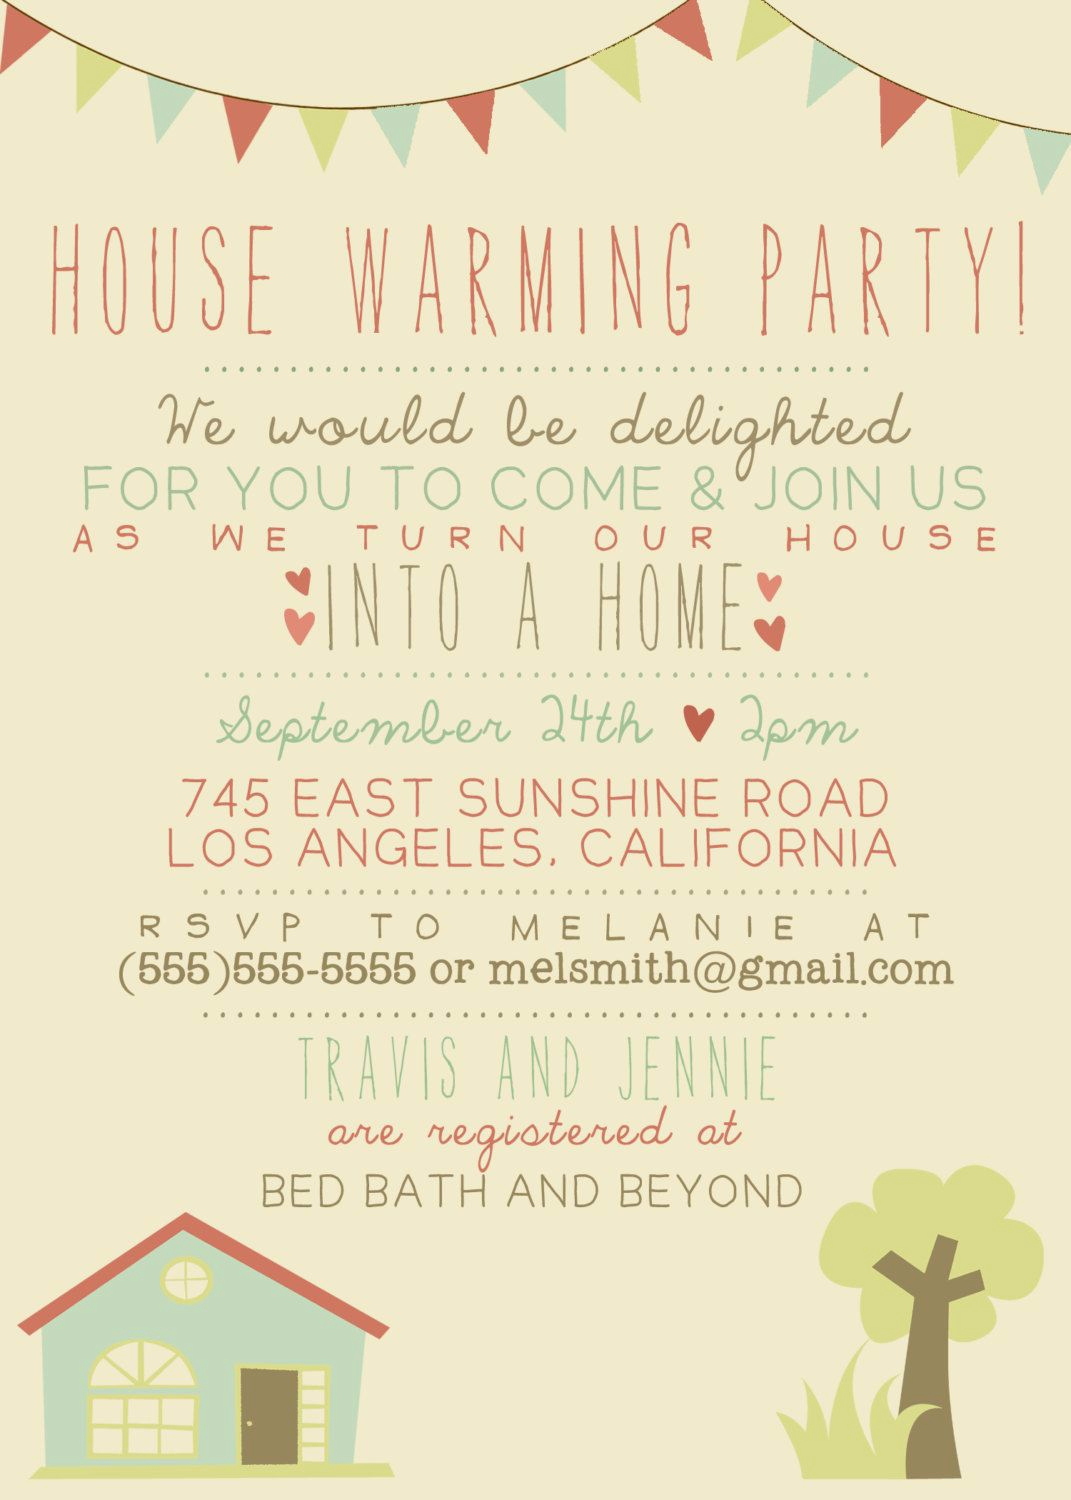 Housewarming Party Invitation Wording Best Of House Warming Party Invitation Printable Custom Diy